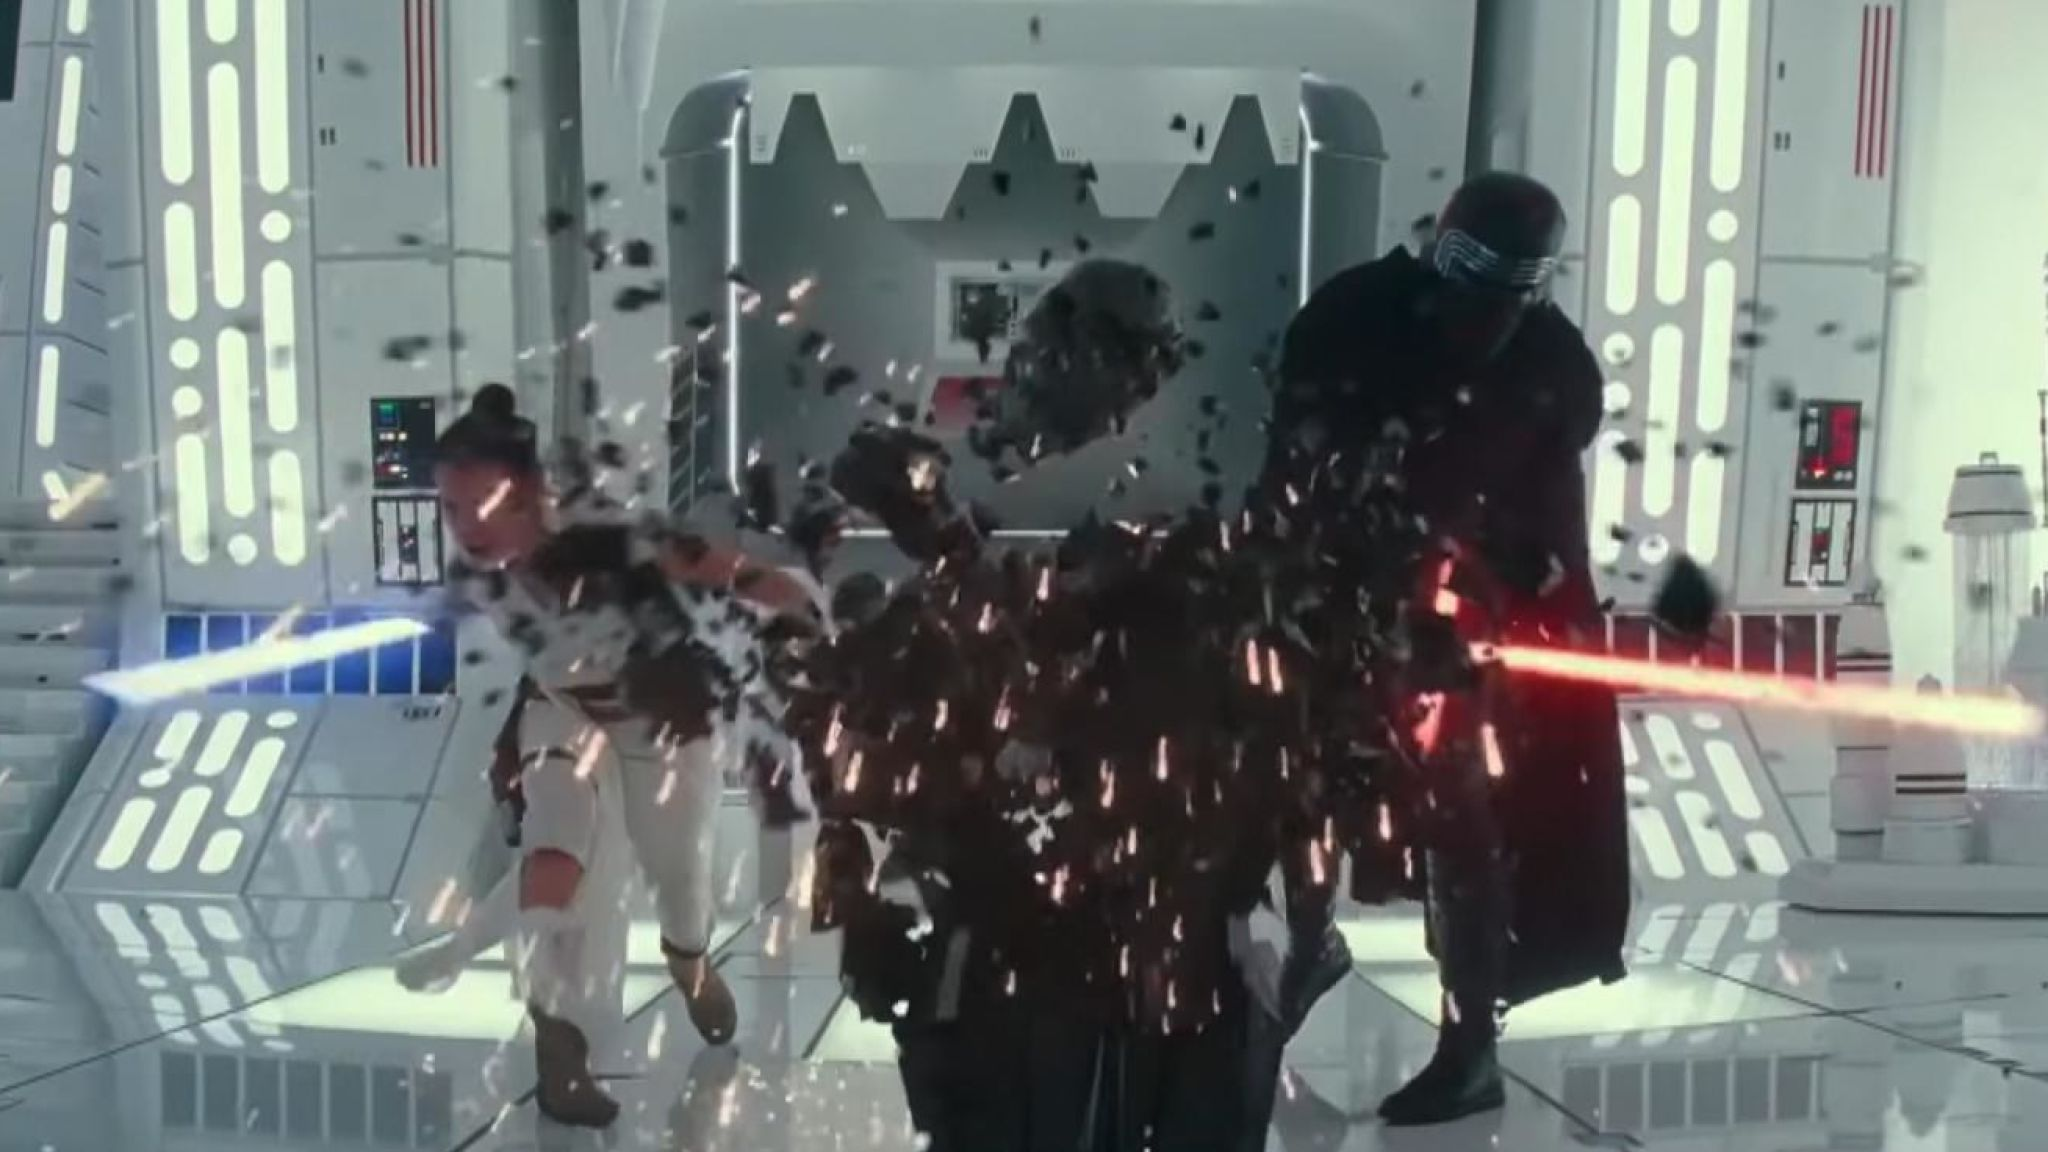 Rey and Kylo Ren team up to destroy what looks to be Darth Vader's iconic helmet